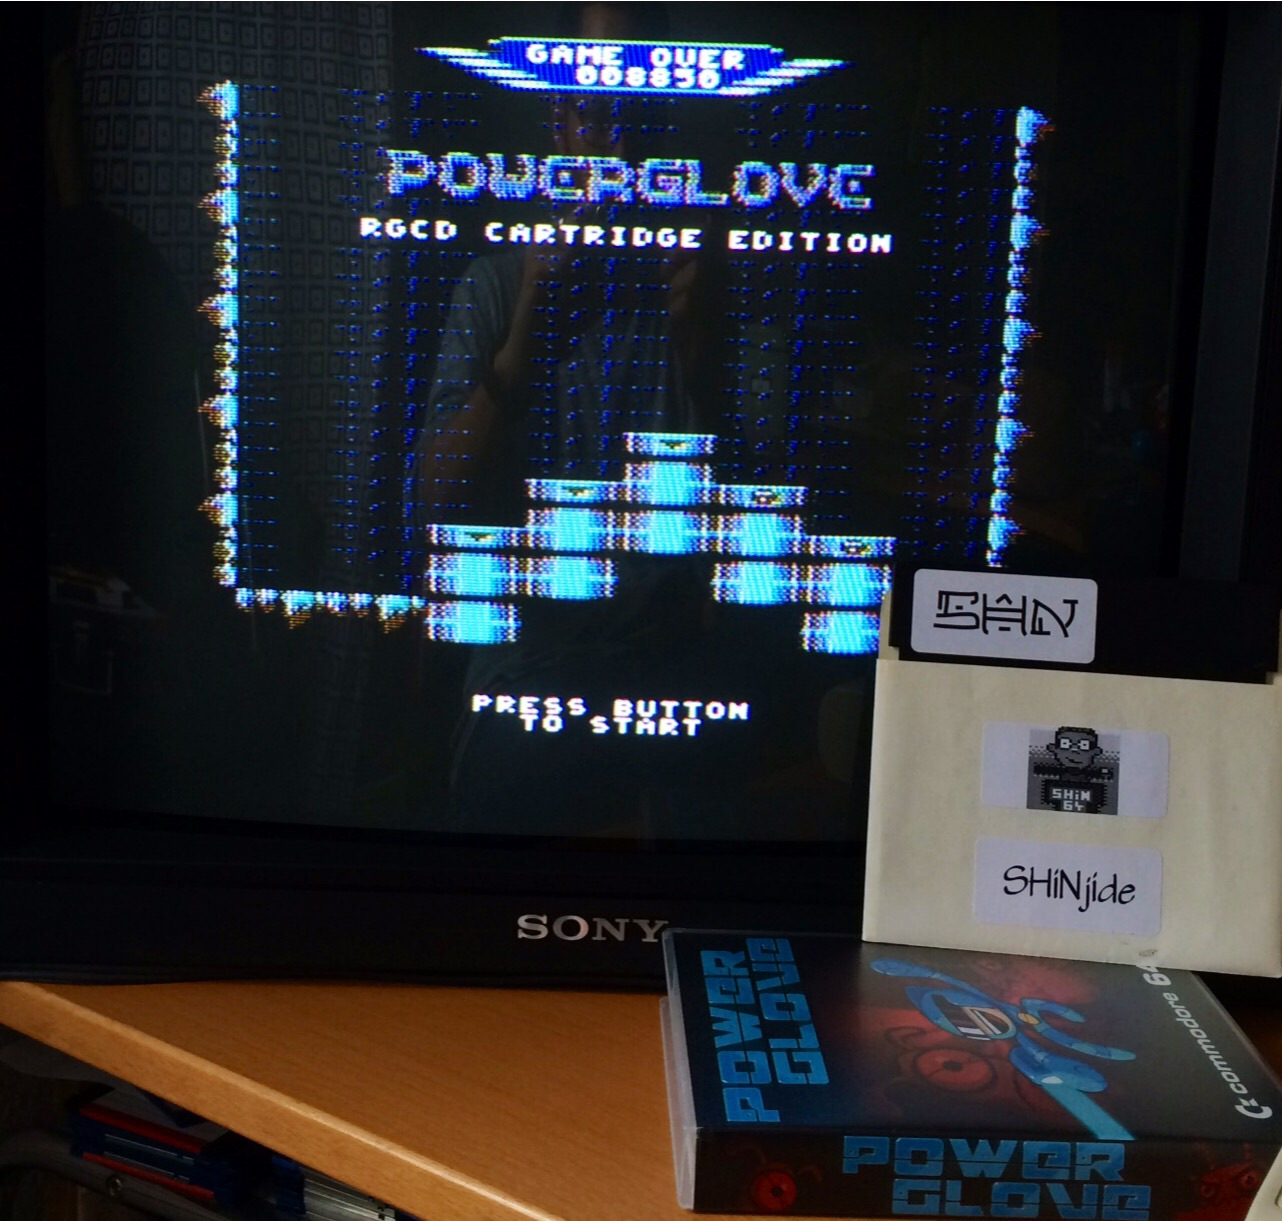 SHiNjide: Powerglove [RGCD Cartridge Edition] (Commodore 64) 8,850 points on 2014-09-26 15:58:31